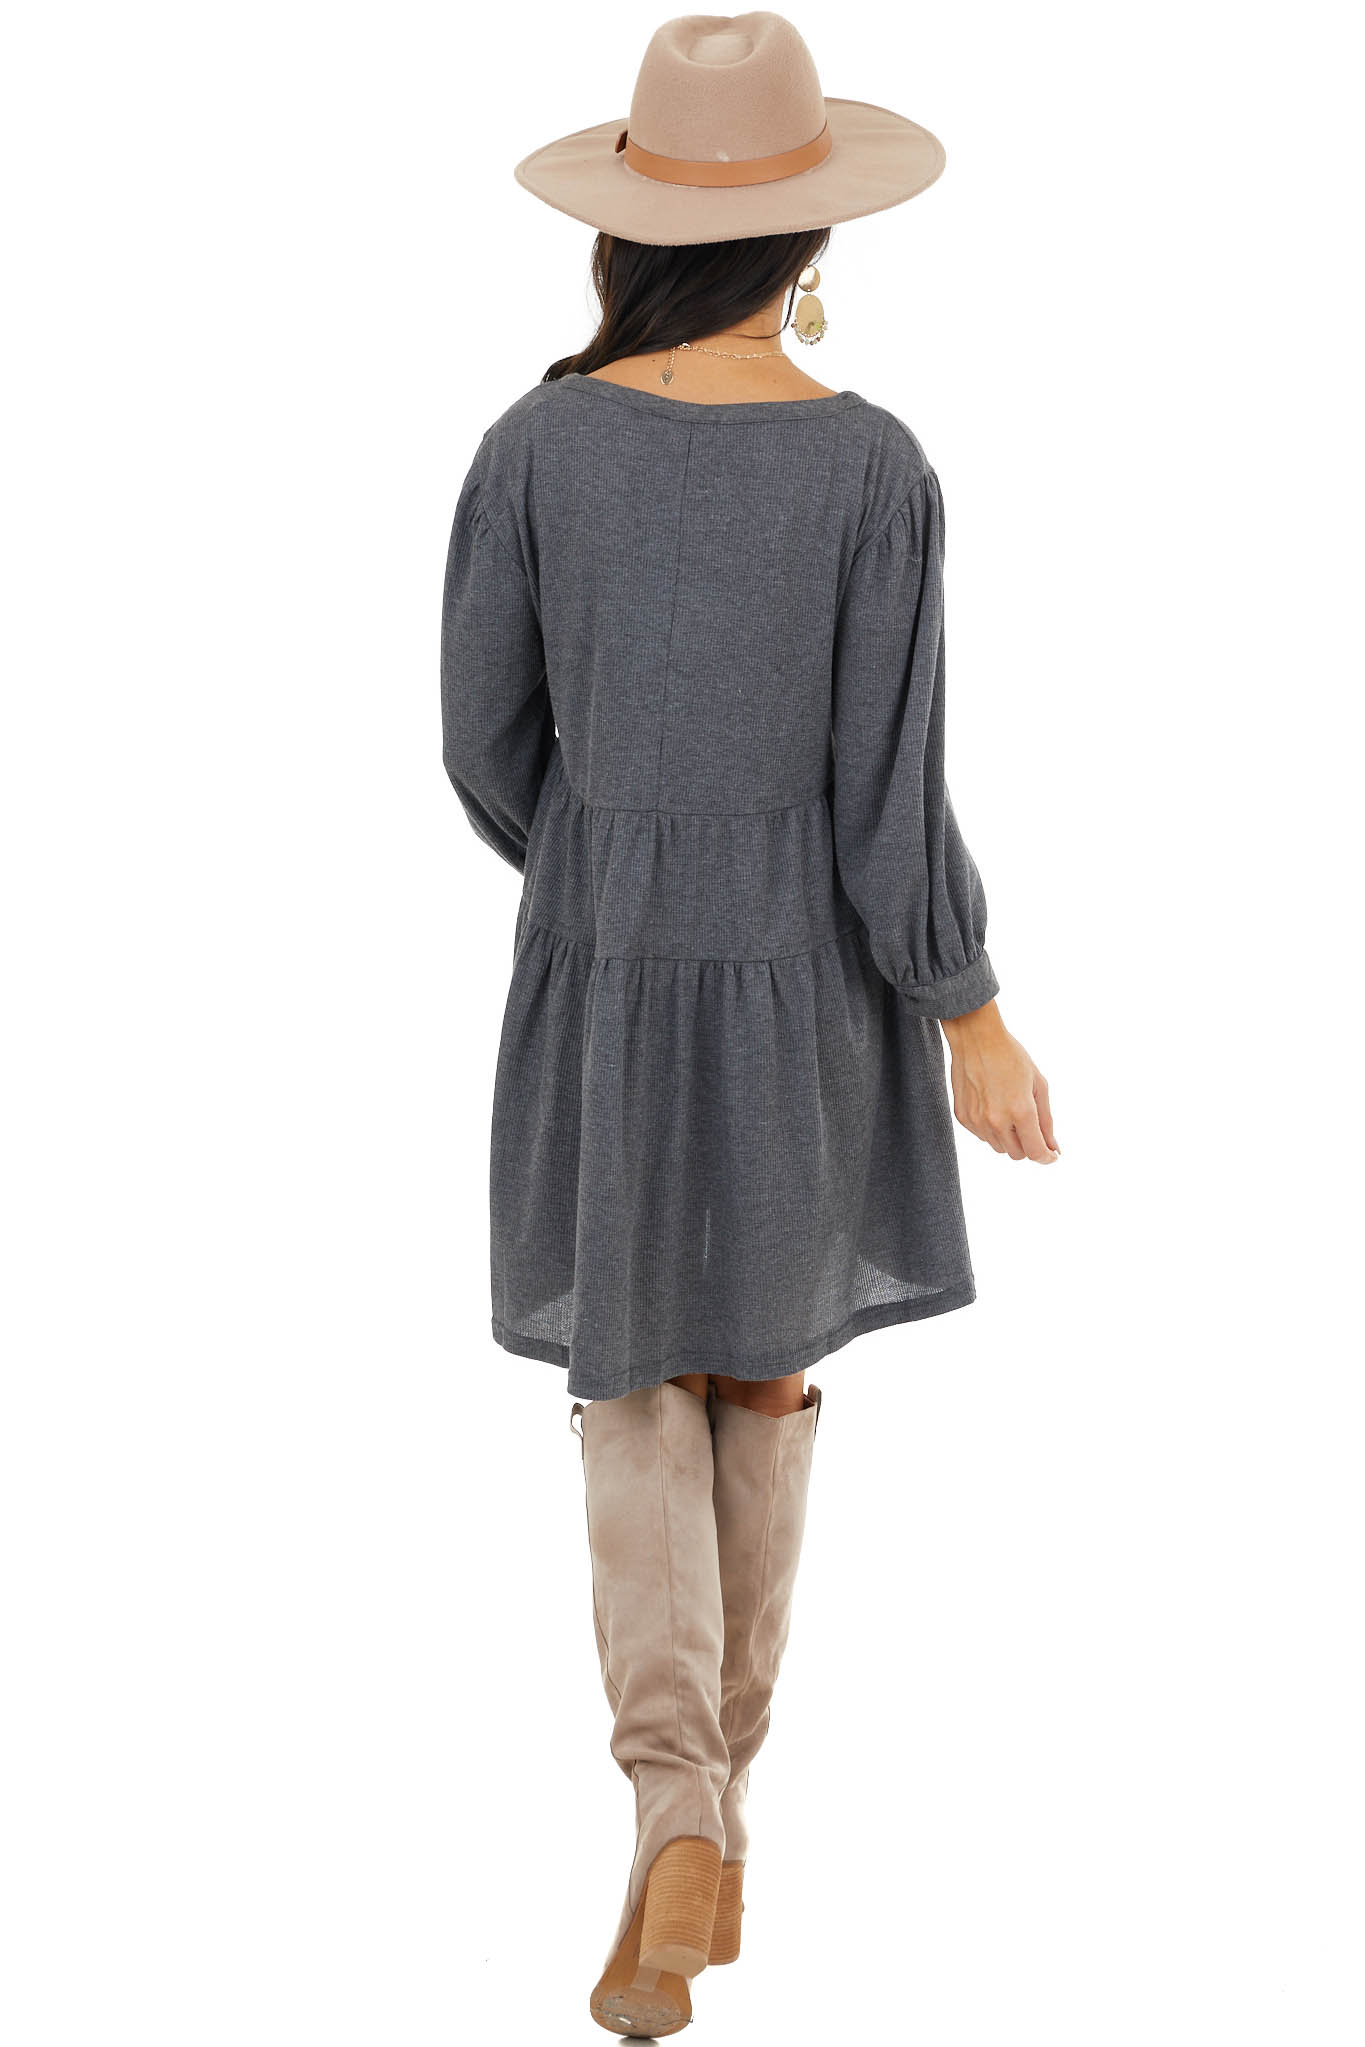 Stormy Grey Henley Baby Doll Tiered Dress with Puff Sleeves